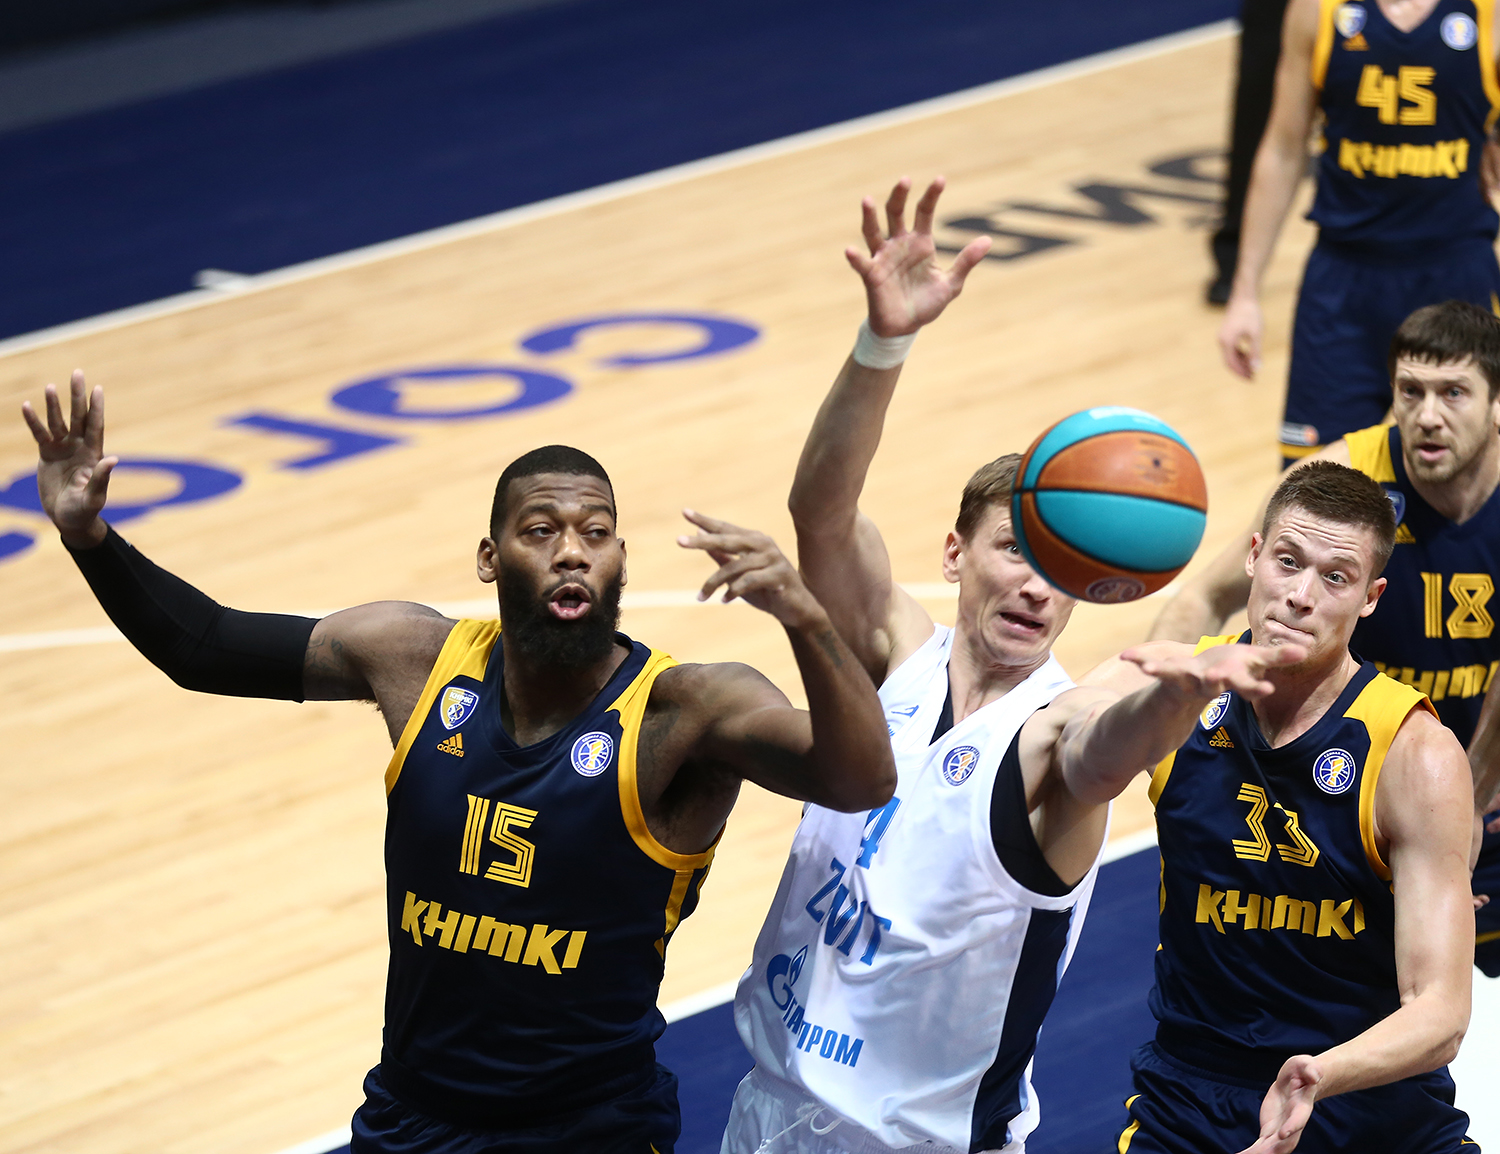 Season opener: Zenit pace up in 4th to beat Khimki